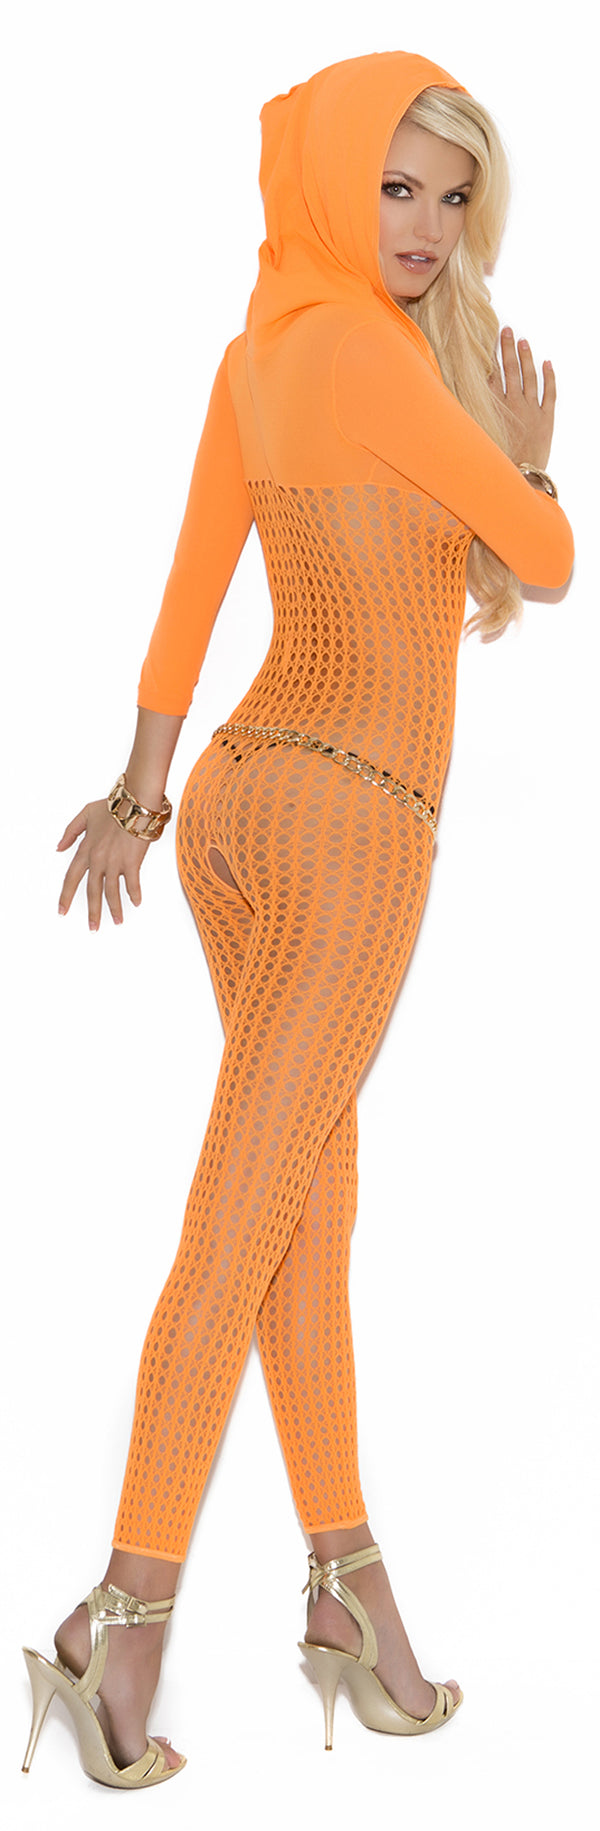 Neon Orange Crochet bodystocking EM8011 Back